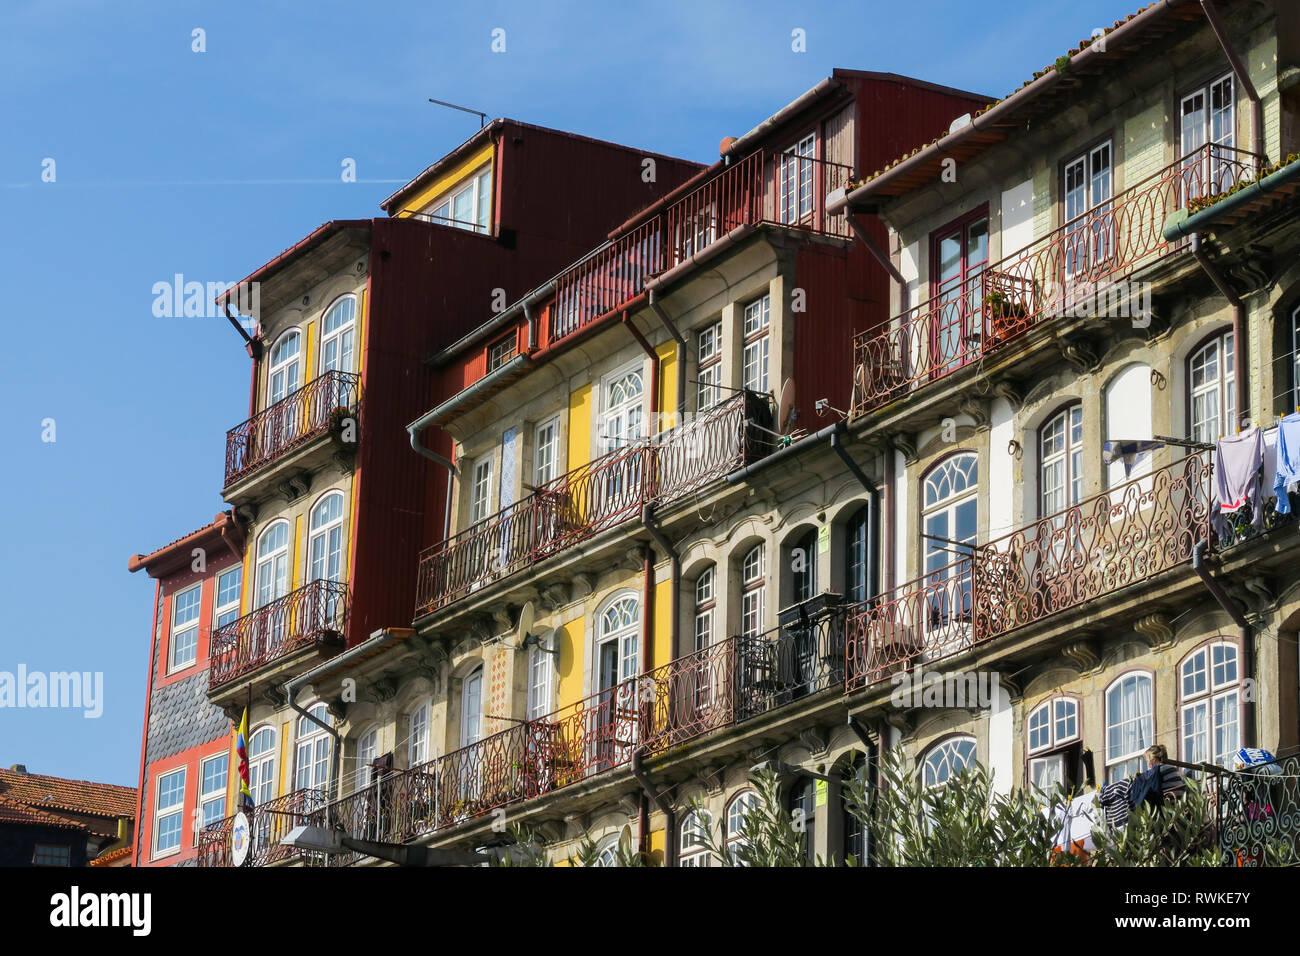 Typical colorful house facades in the old town of porto, portugal Stock Photo